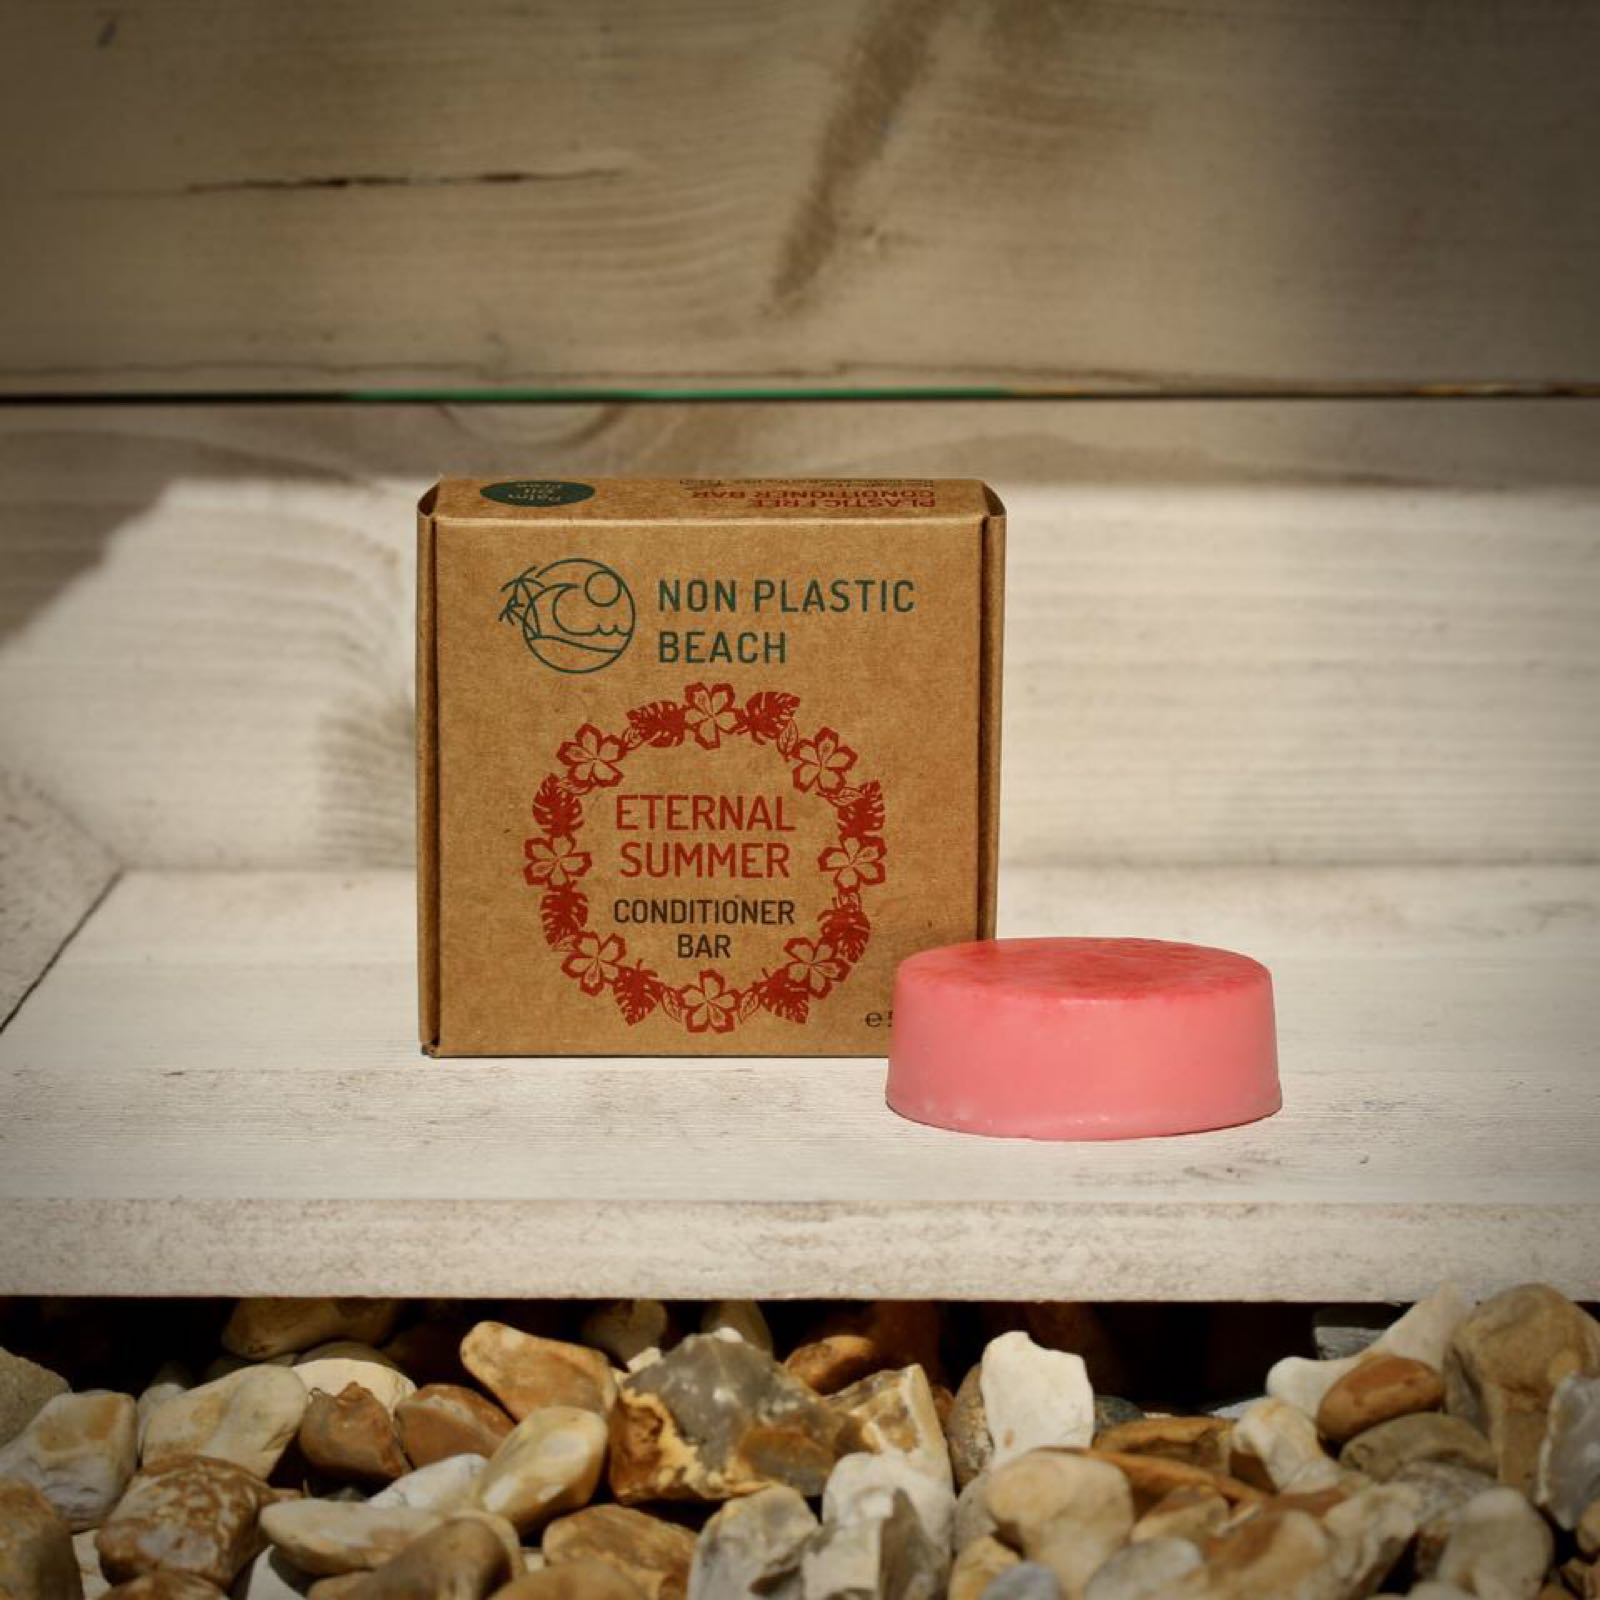 'Eternal Summer' Conditioner Bar